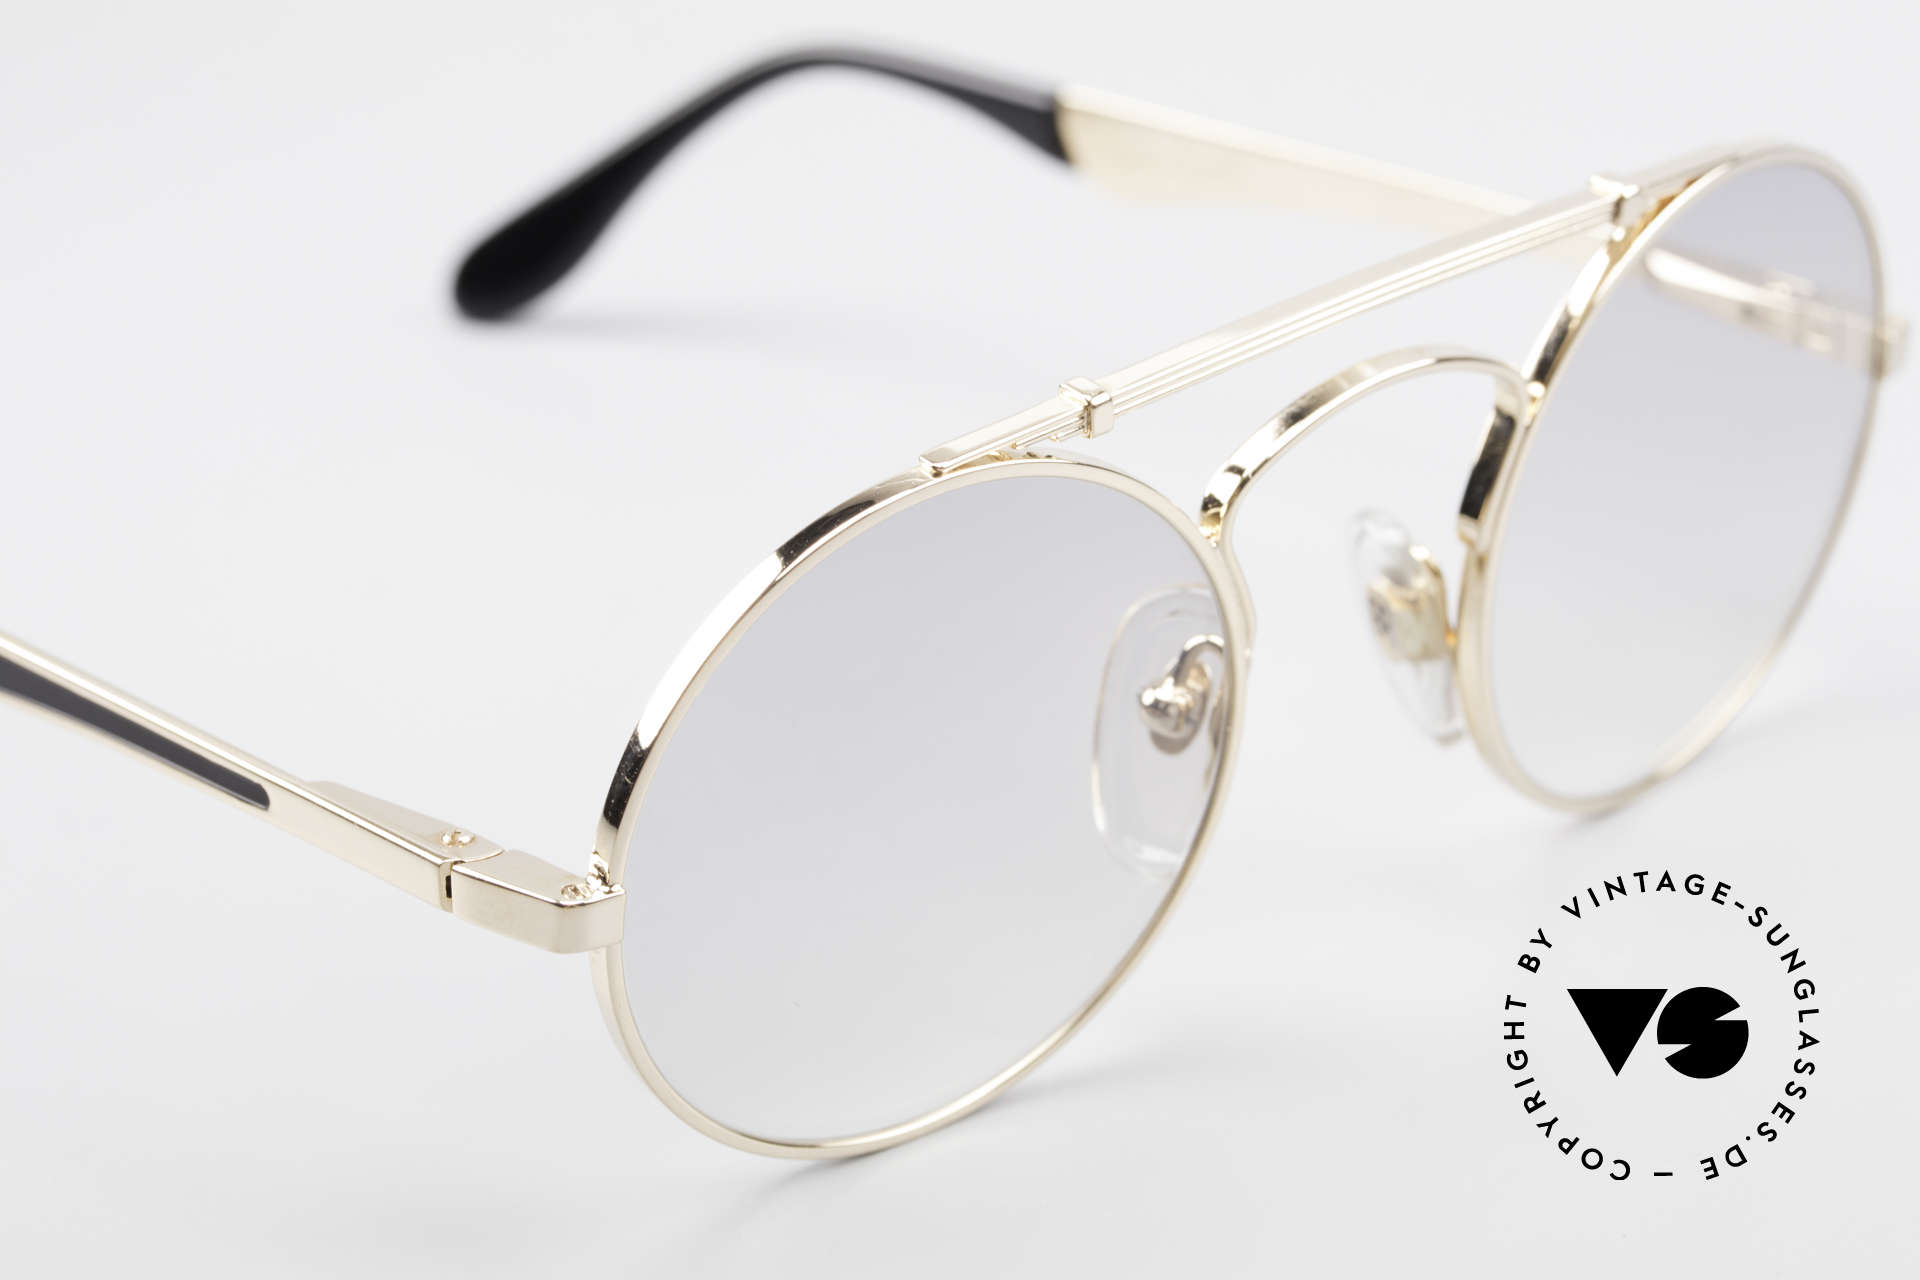 Bugatti 11711 Small Round Luxury Sunglasses, UNWORN model, one of a kind, (with orig. packing), Made for Men